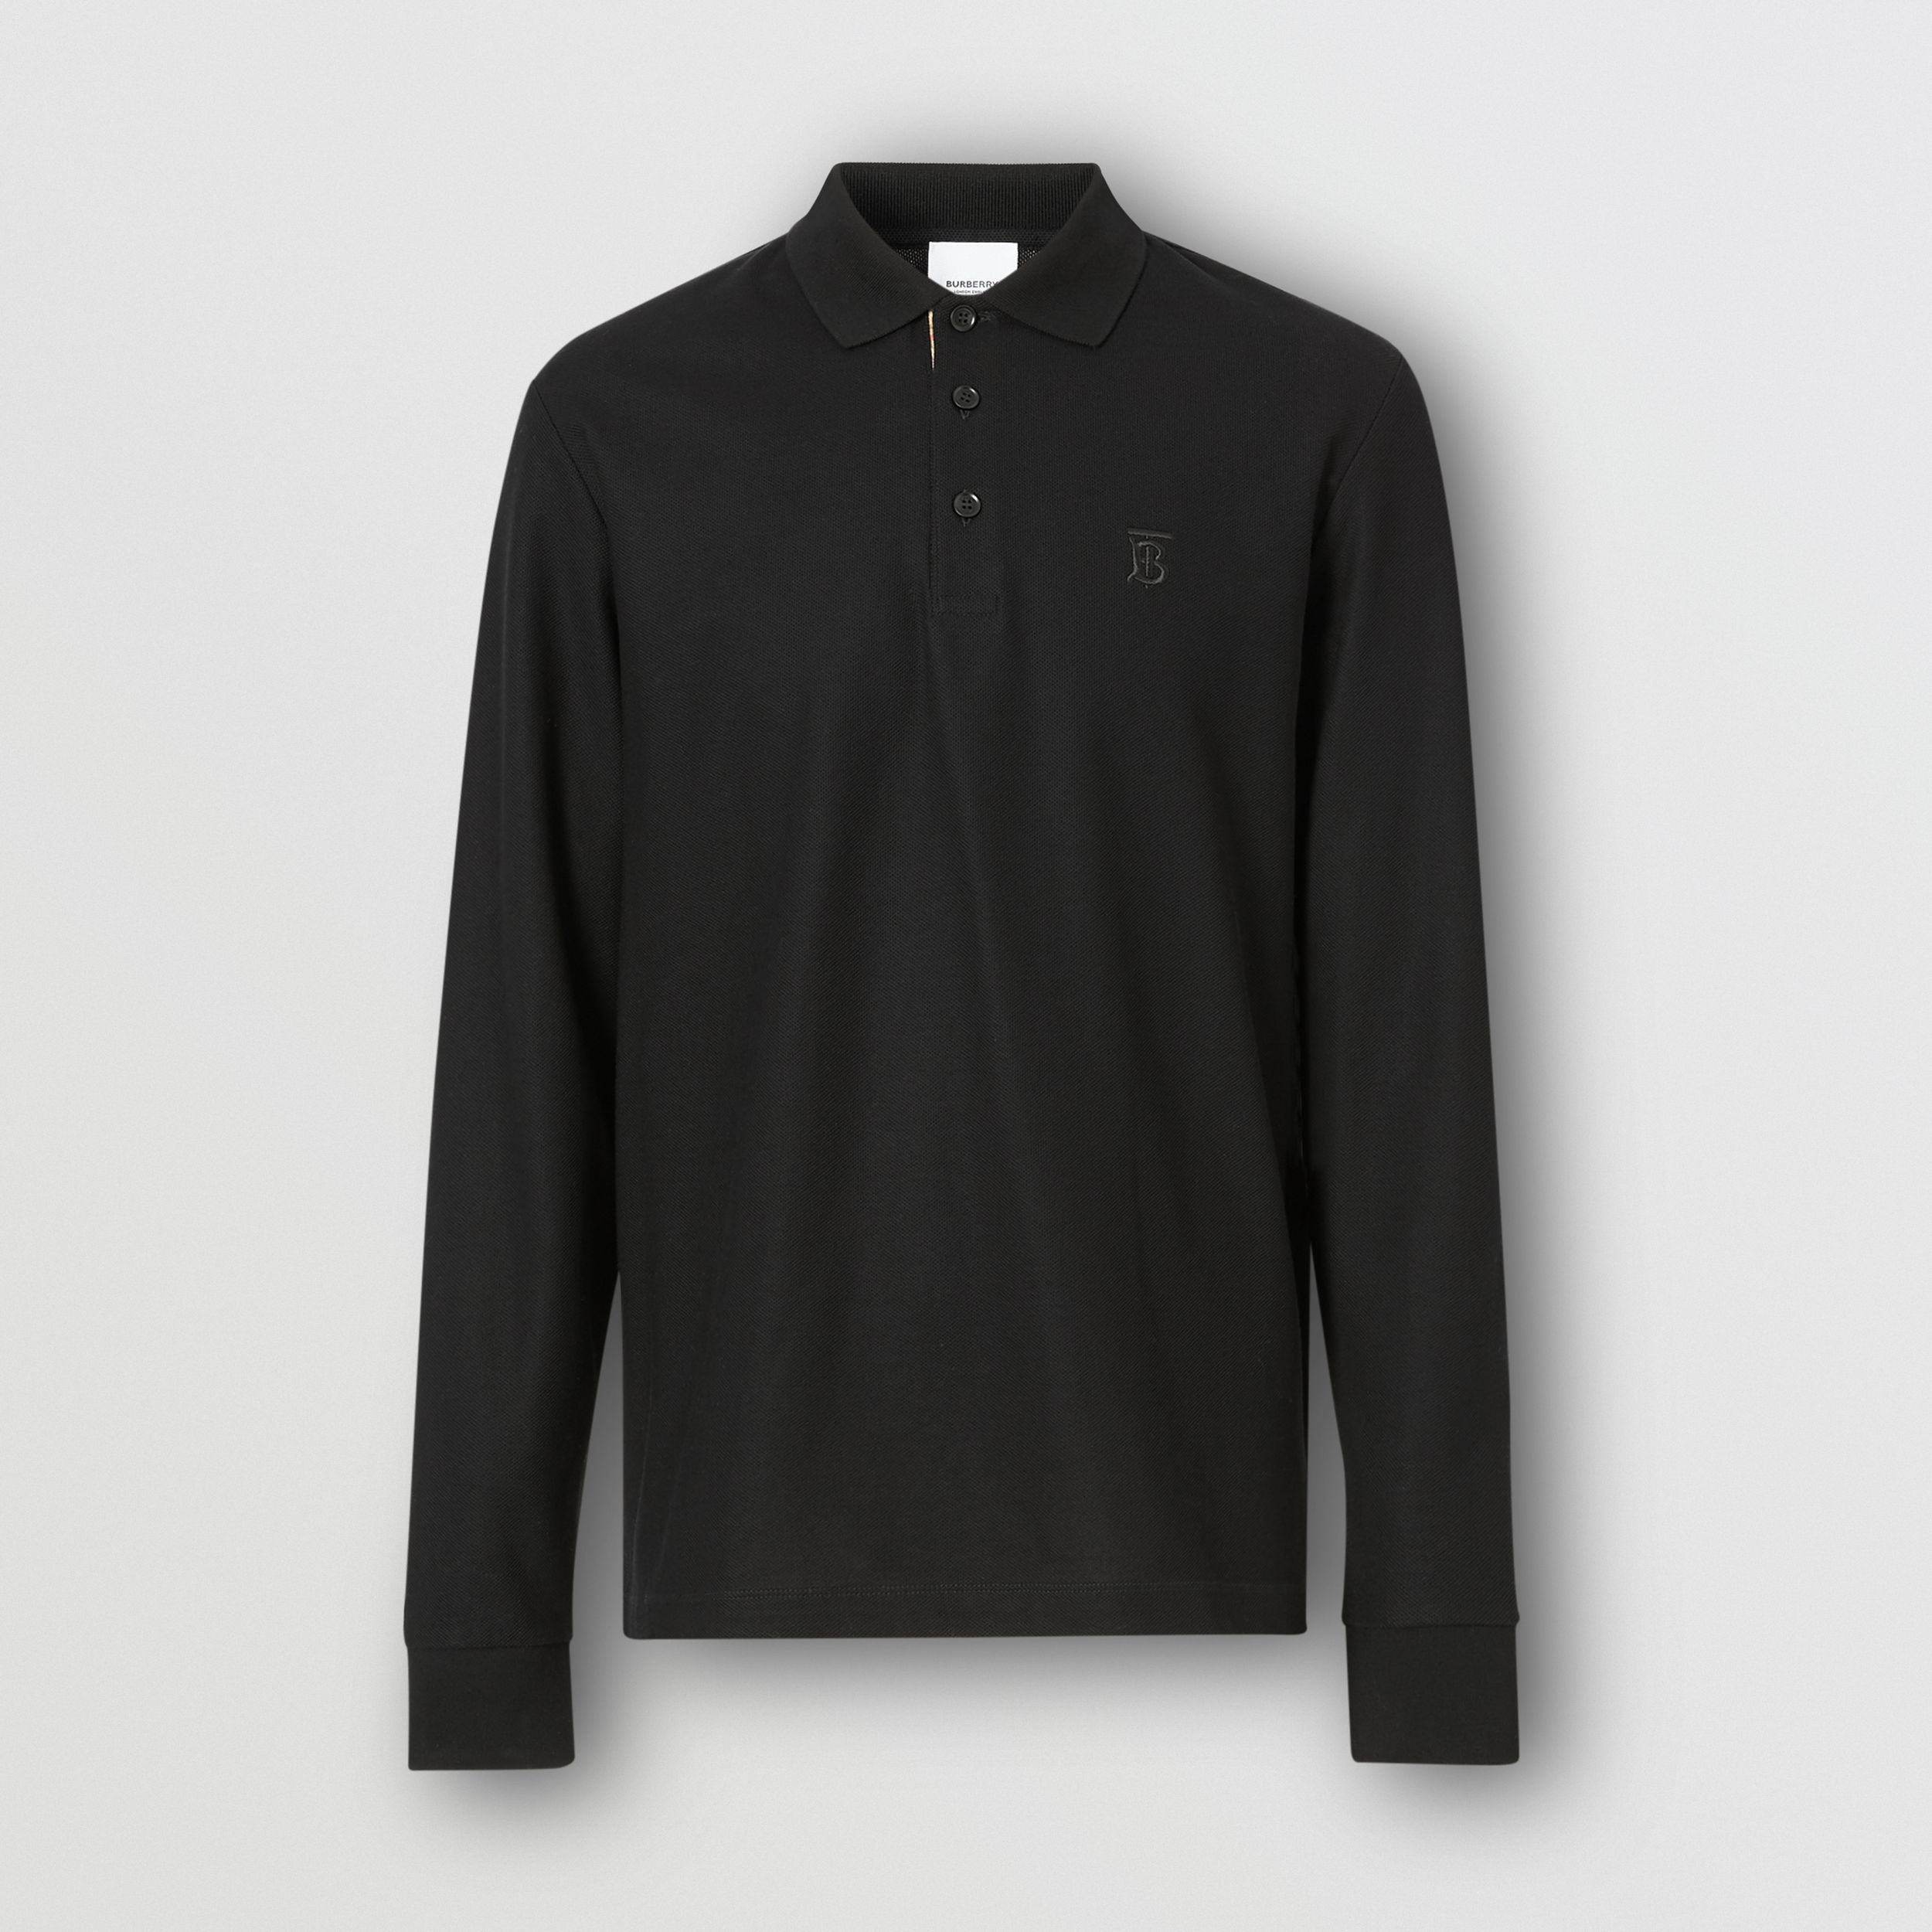 Long-sleeve Monogram Motif Cotton Piqué Polo Shirt in Black - Men | Burberry - 4